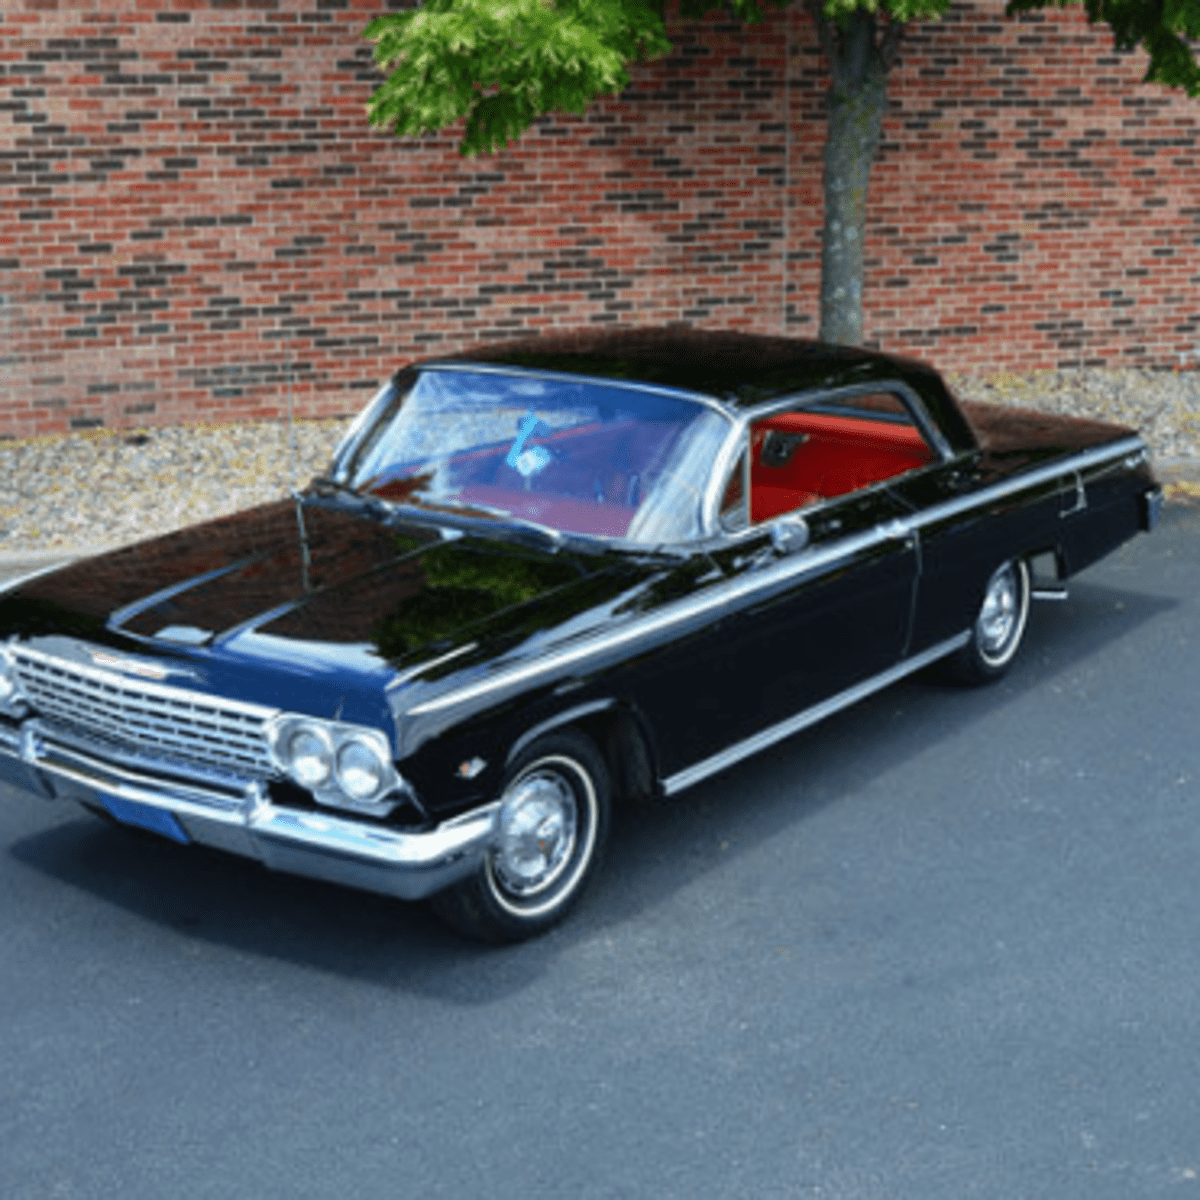 Car Of The Week 1962 Chevrolet Impala Ss Old Cars Weekly